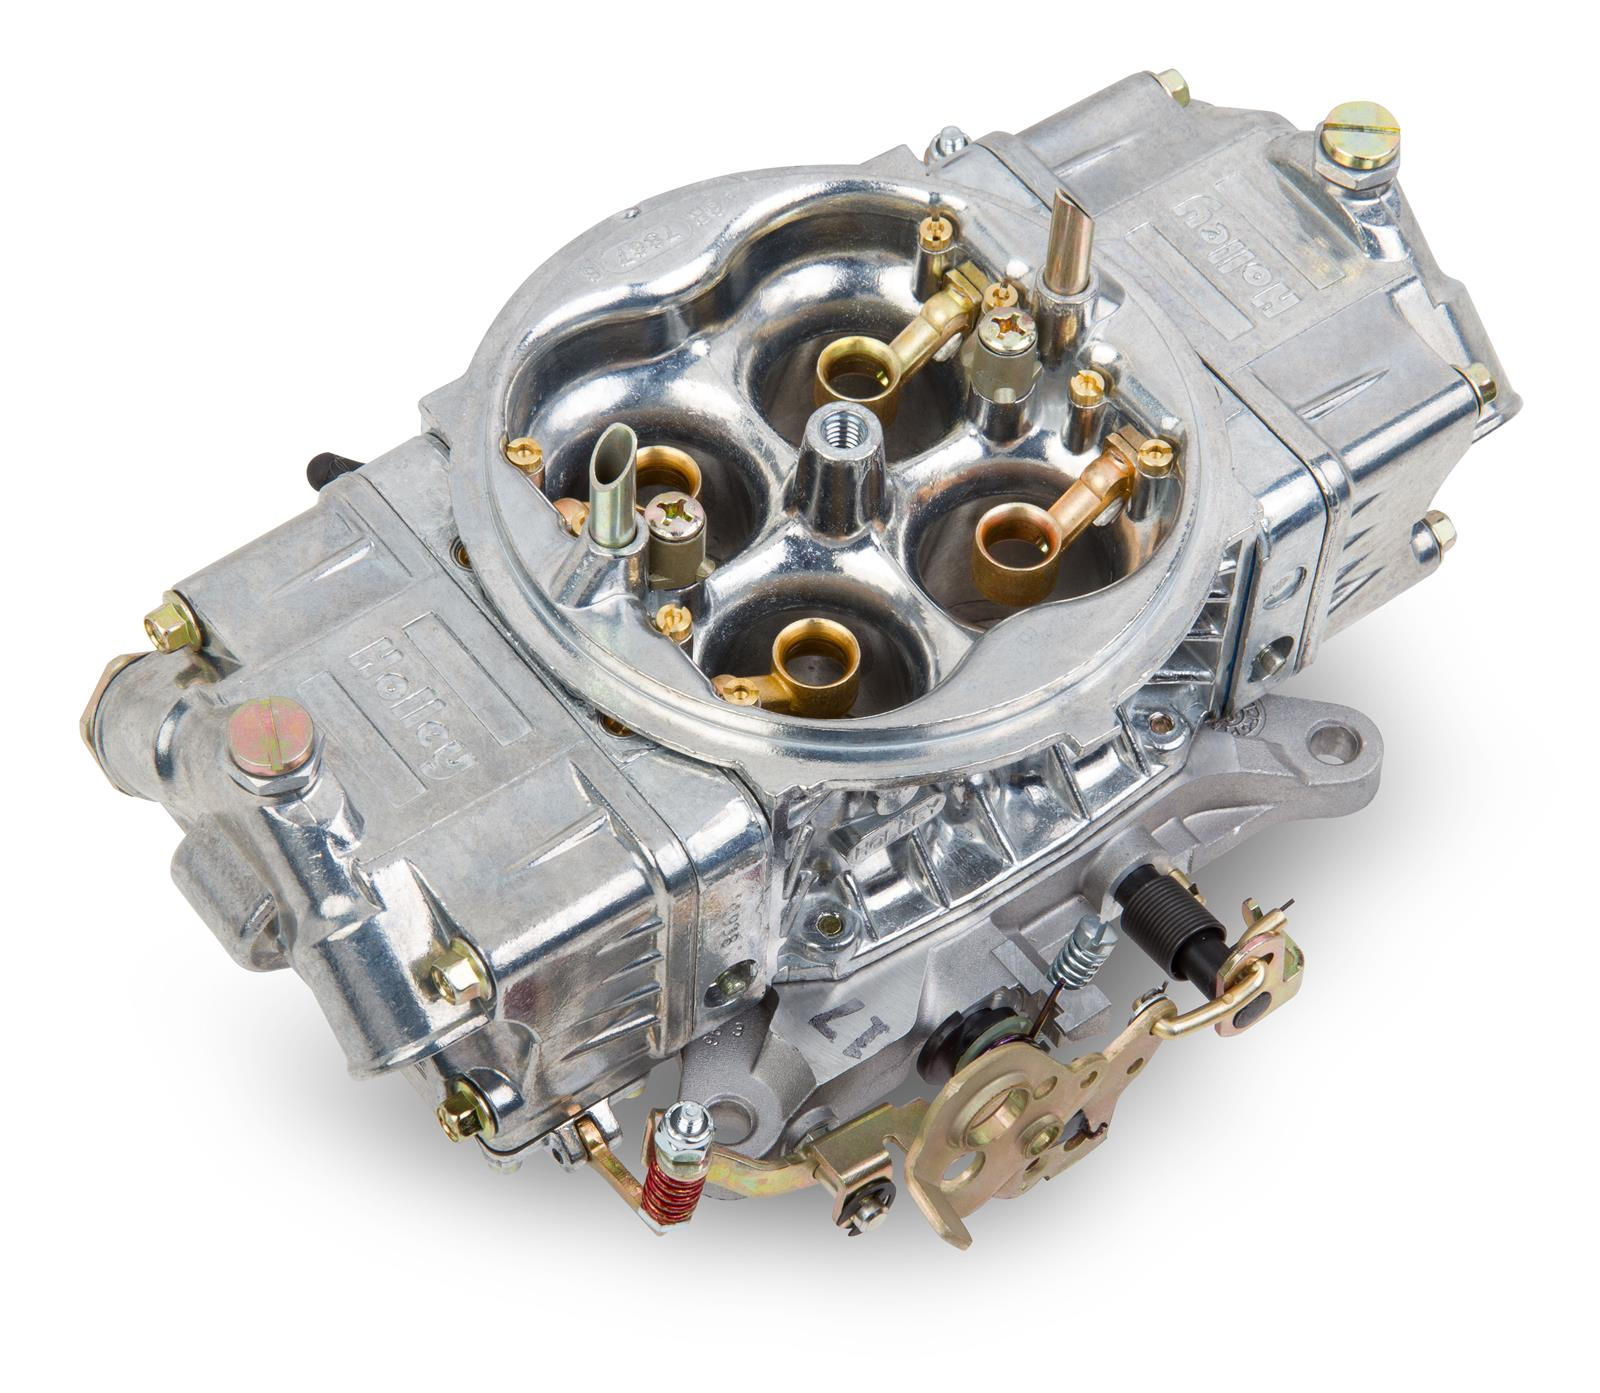 holley hp supercharger carburetors s shipping holley 4150 hp supercharger carburetors 0 80576s shipping on orders over 99 at summit racing